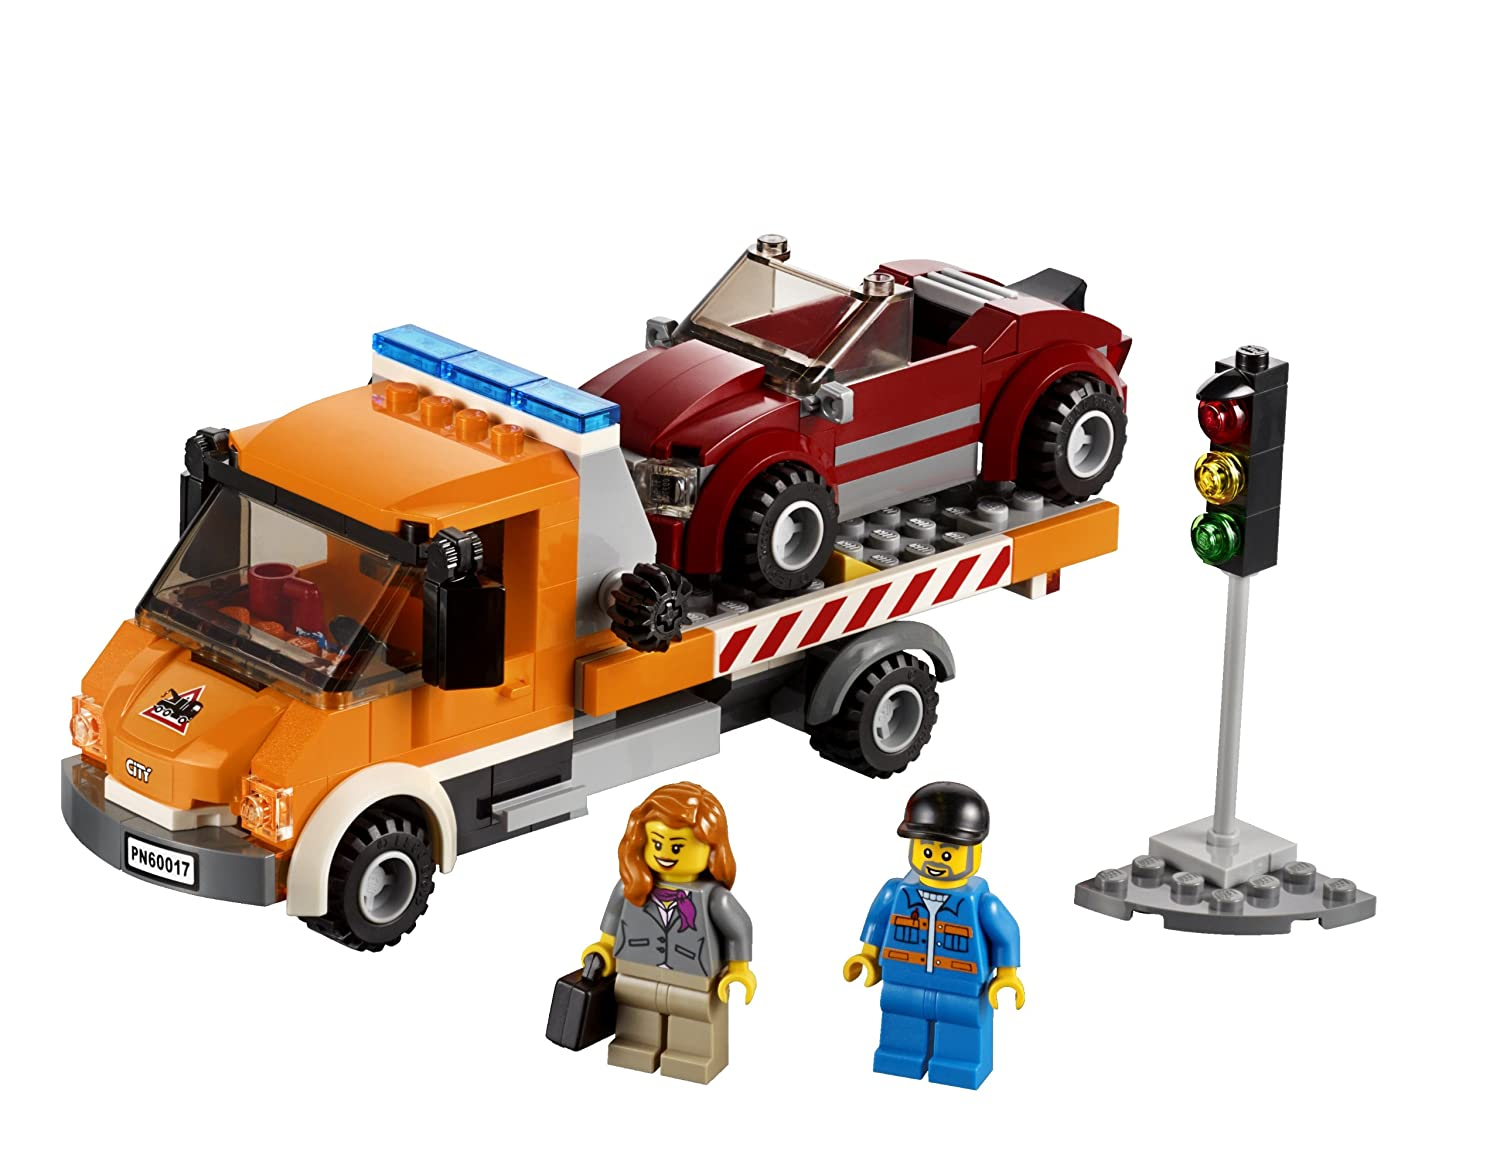 LEGO City Flatbed Truck 60017 6021682